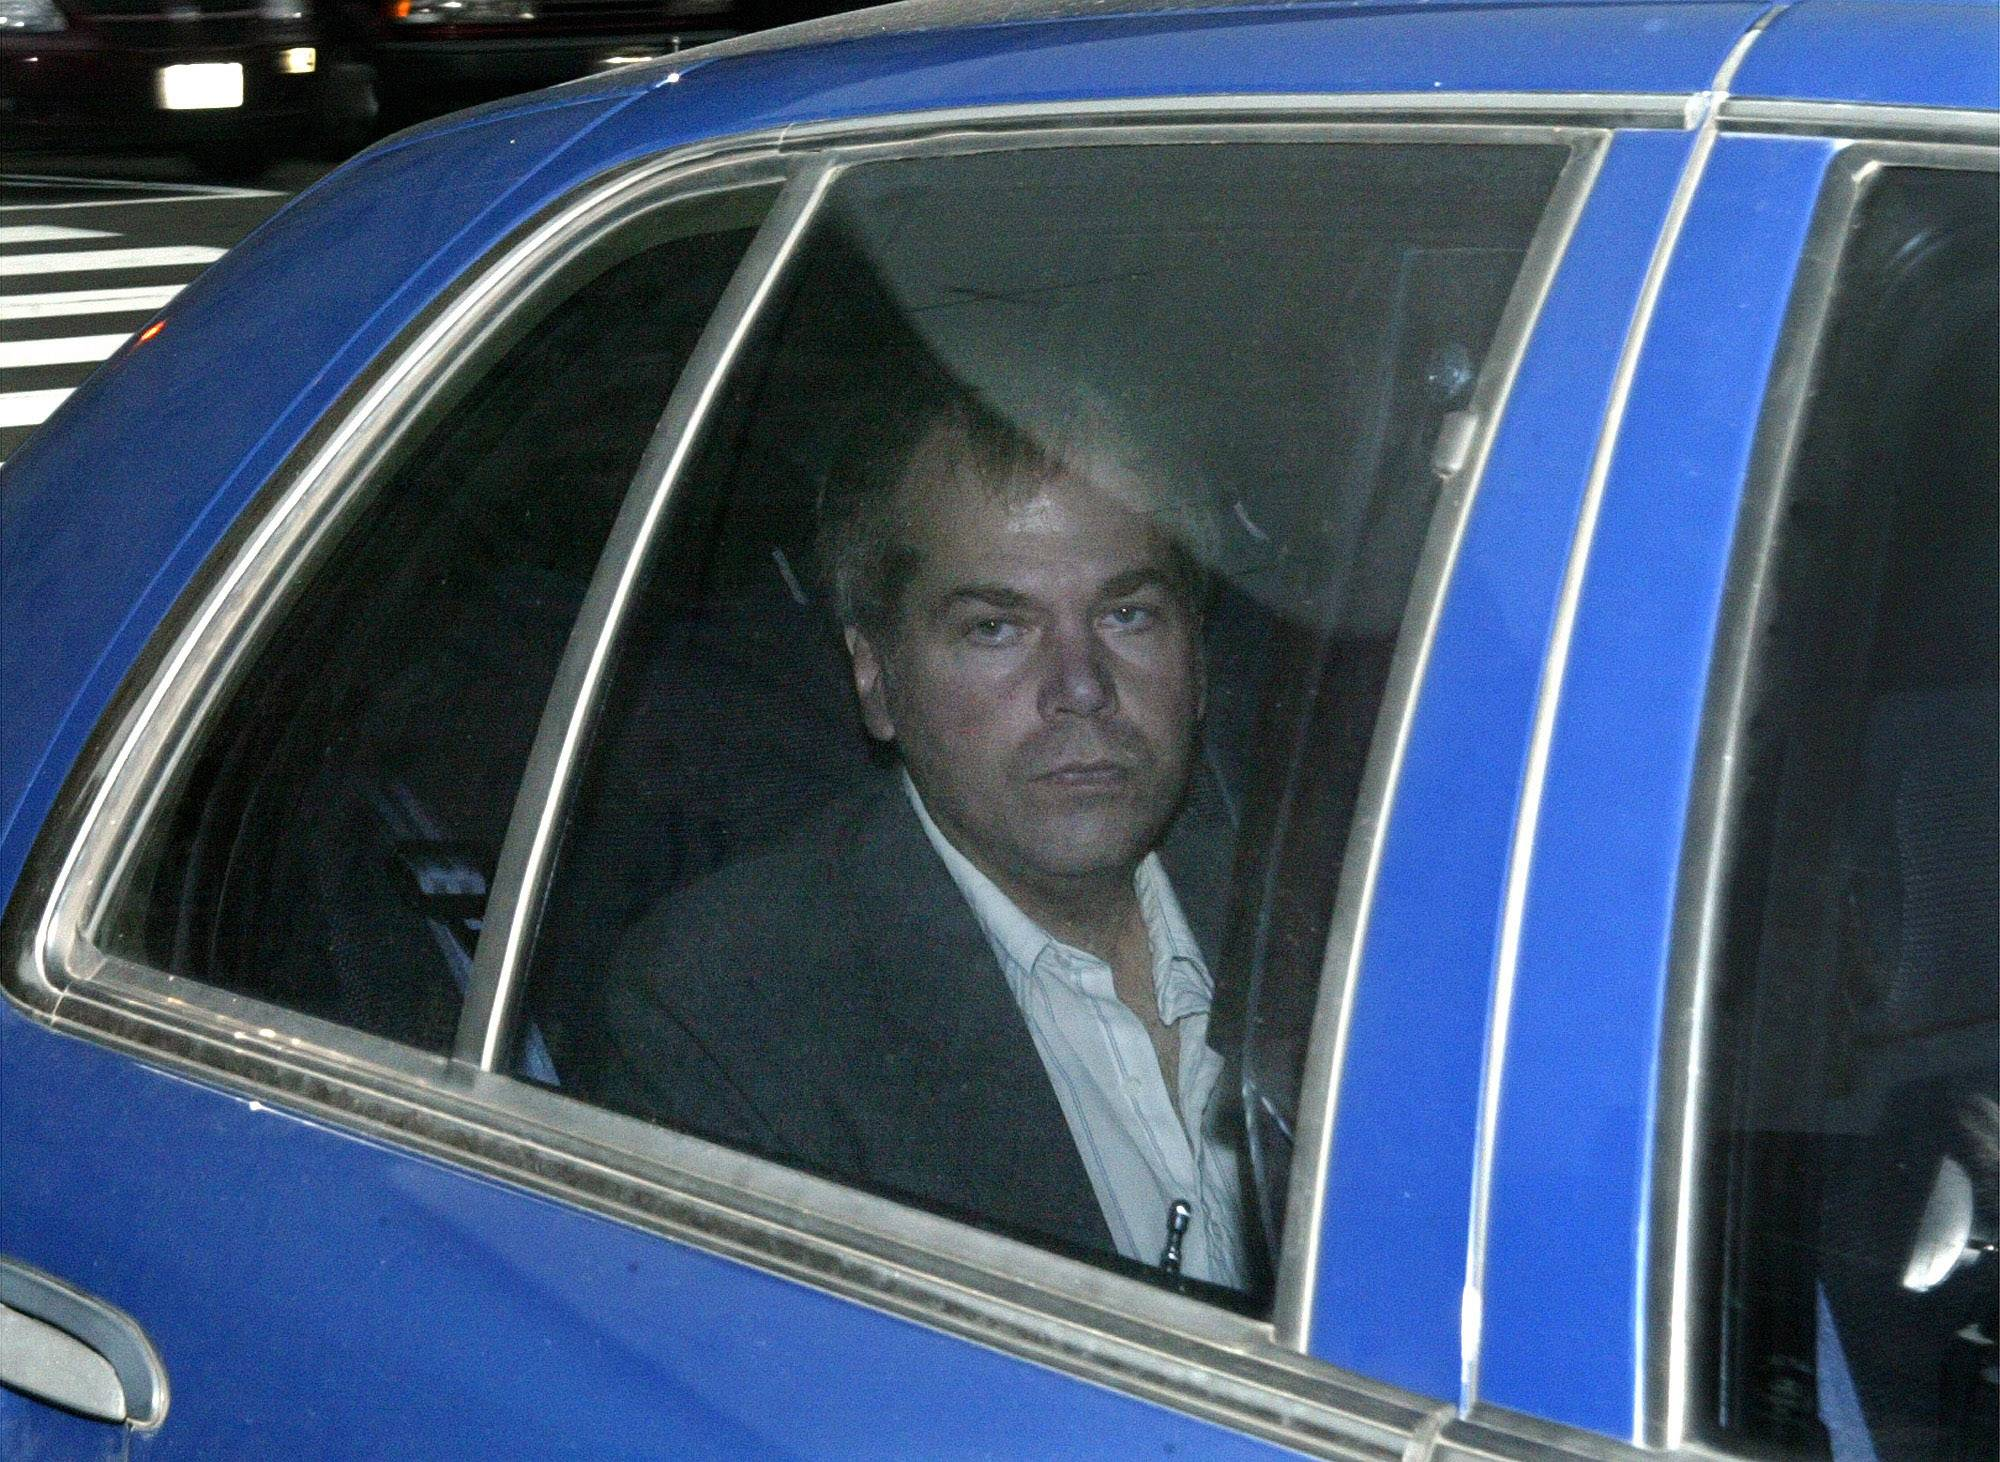 A judge says John Hinckley Jr., who attempted to assassinate President Ronald Reagan will be allowed to leave a Washington mental hospital and live full-time in Virginia.